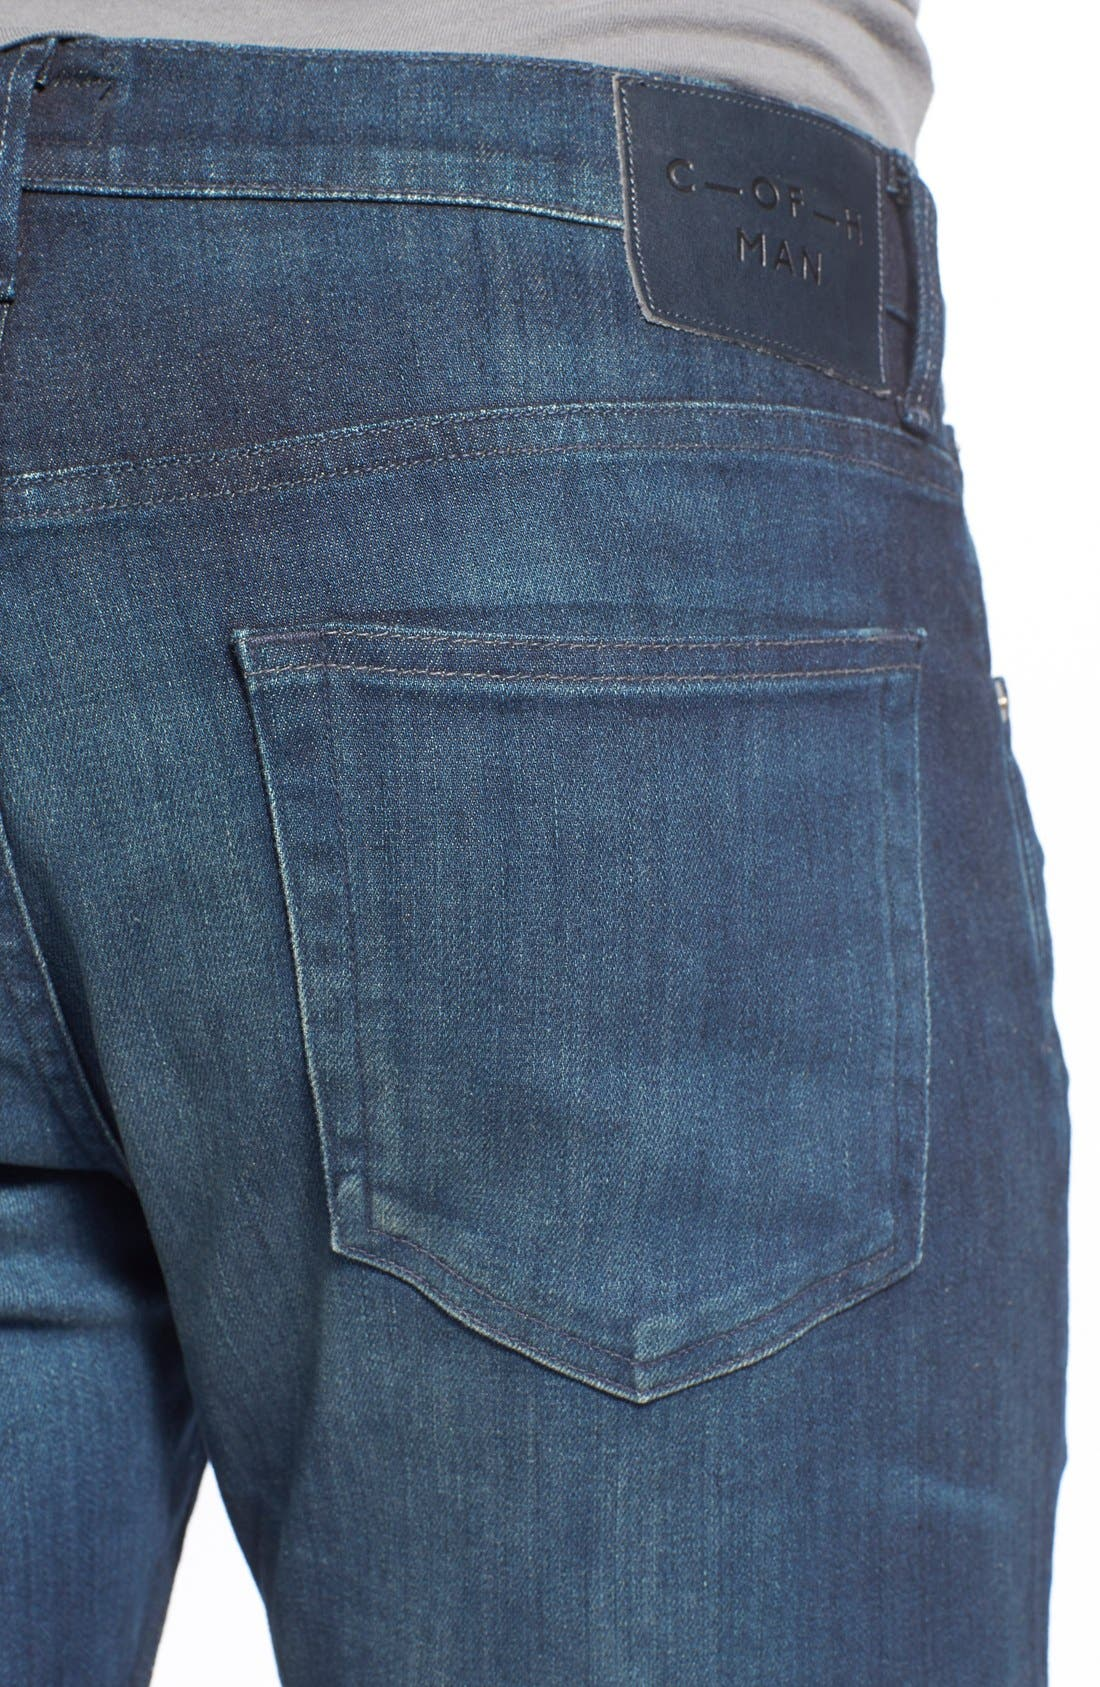 Alternate Image 4  - Citizens of Humanity 'Sid Classic' Straight Leg Jeans (Marshall)